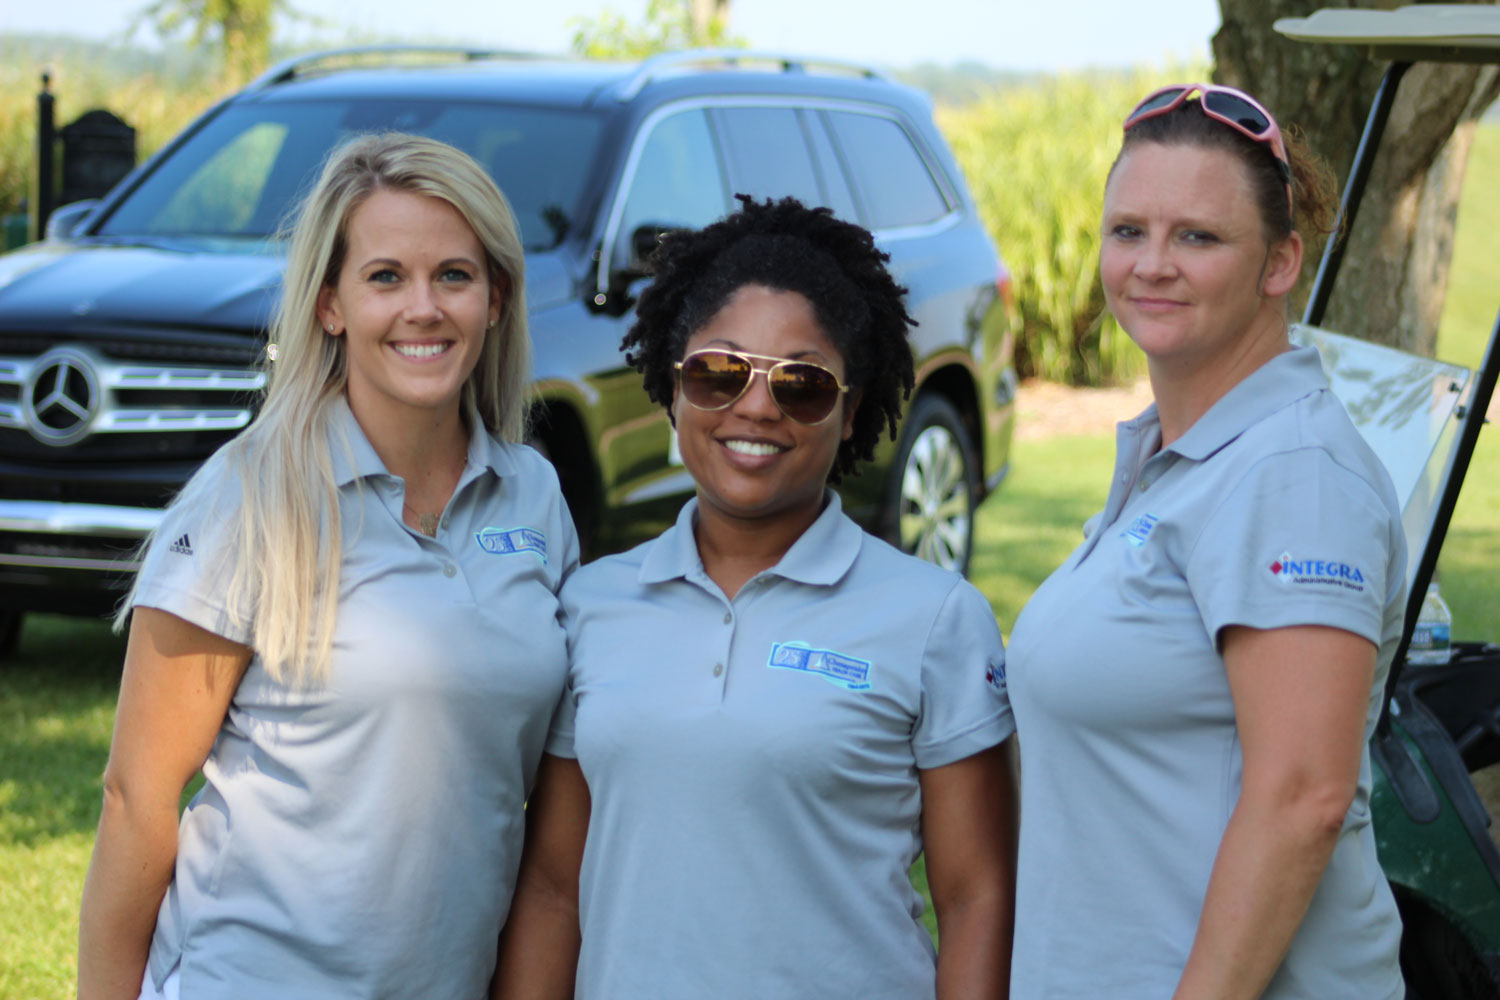 Chesapeake Health Care 6th Annual Golf Tournament gallery image #7